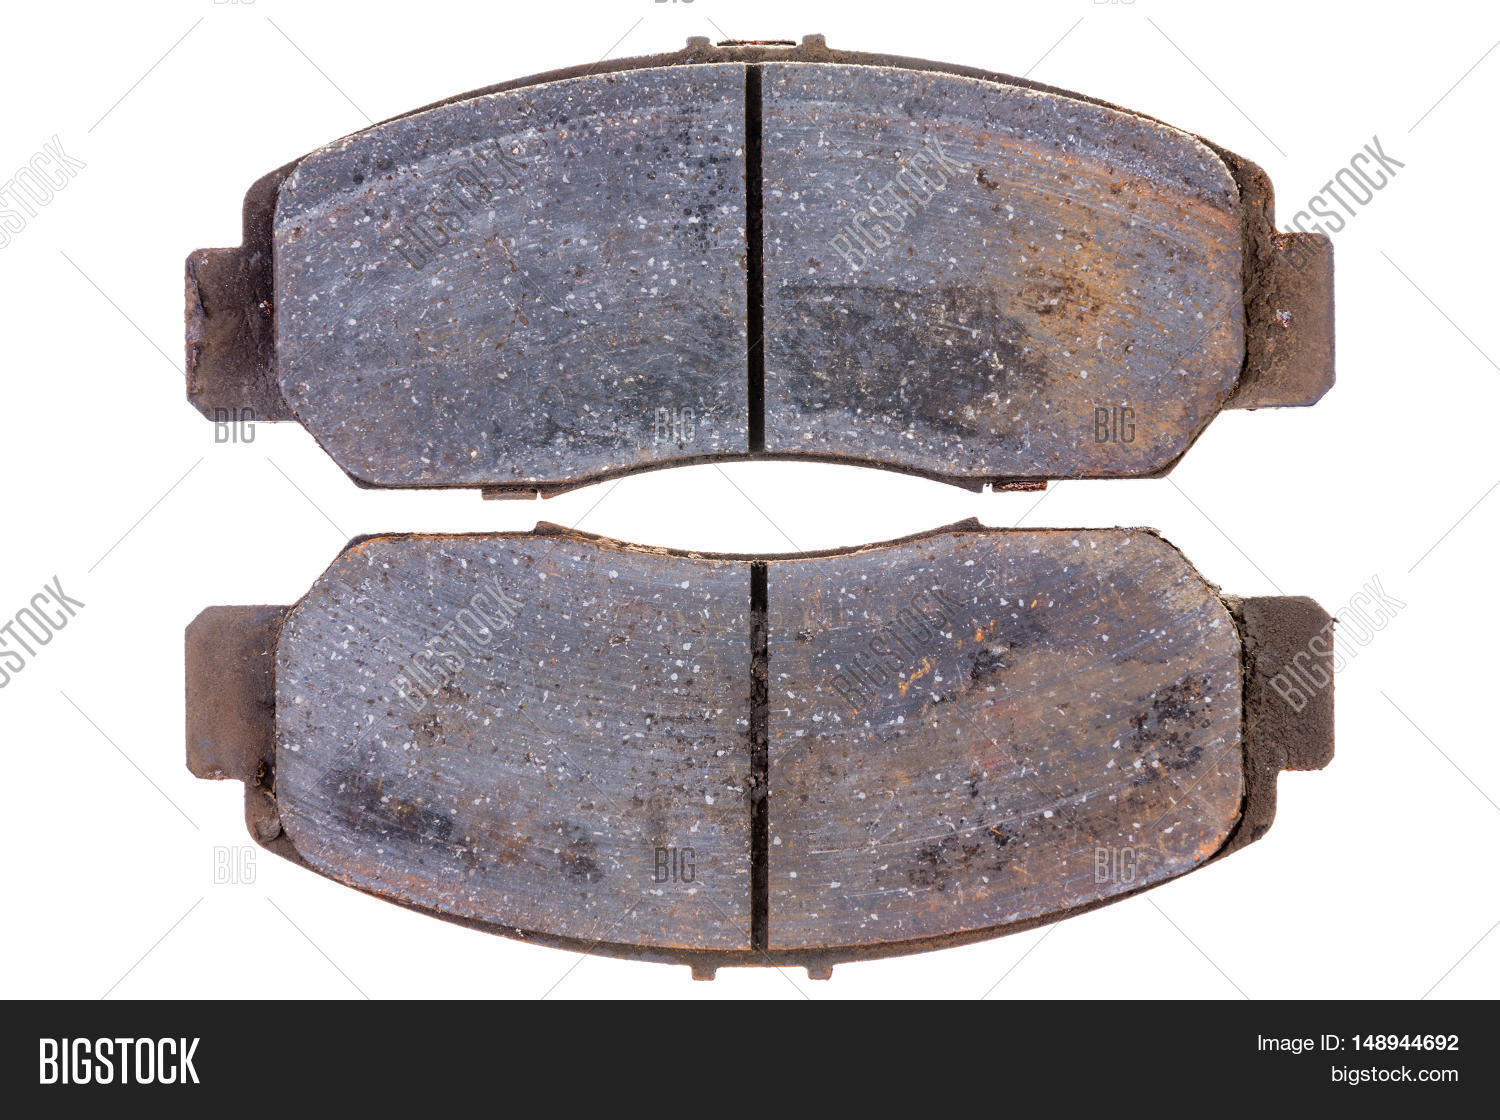 Car Break Pads Worn : Set old worn brake pads car image photo bigstock